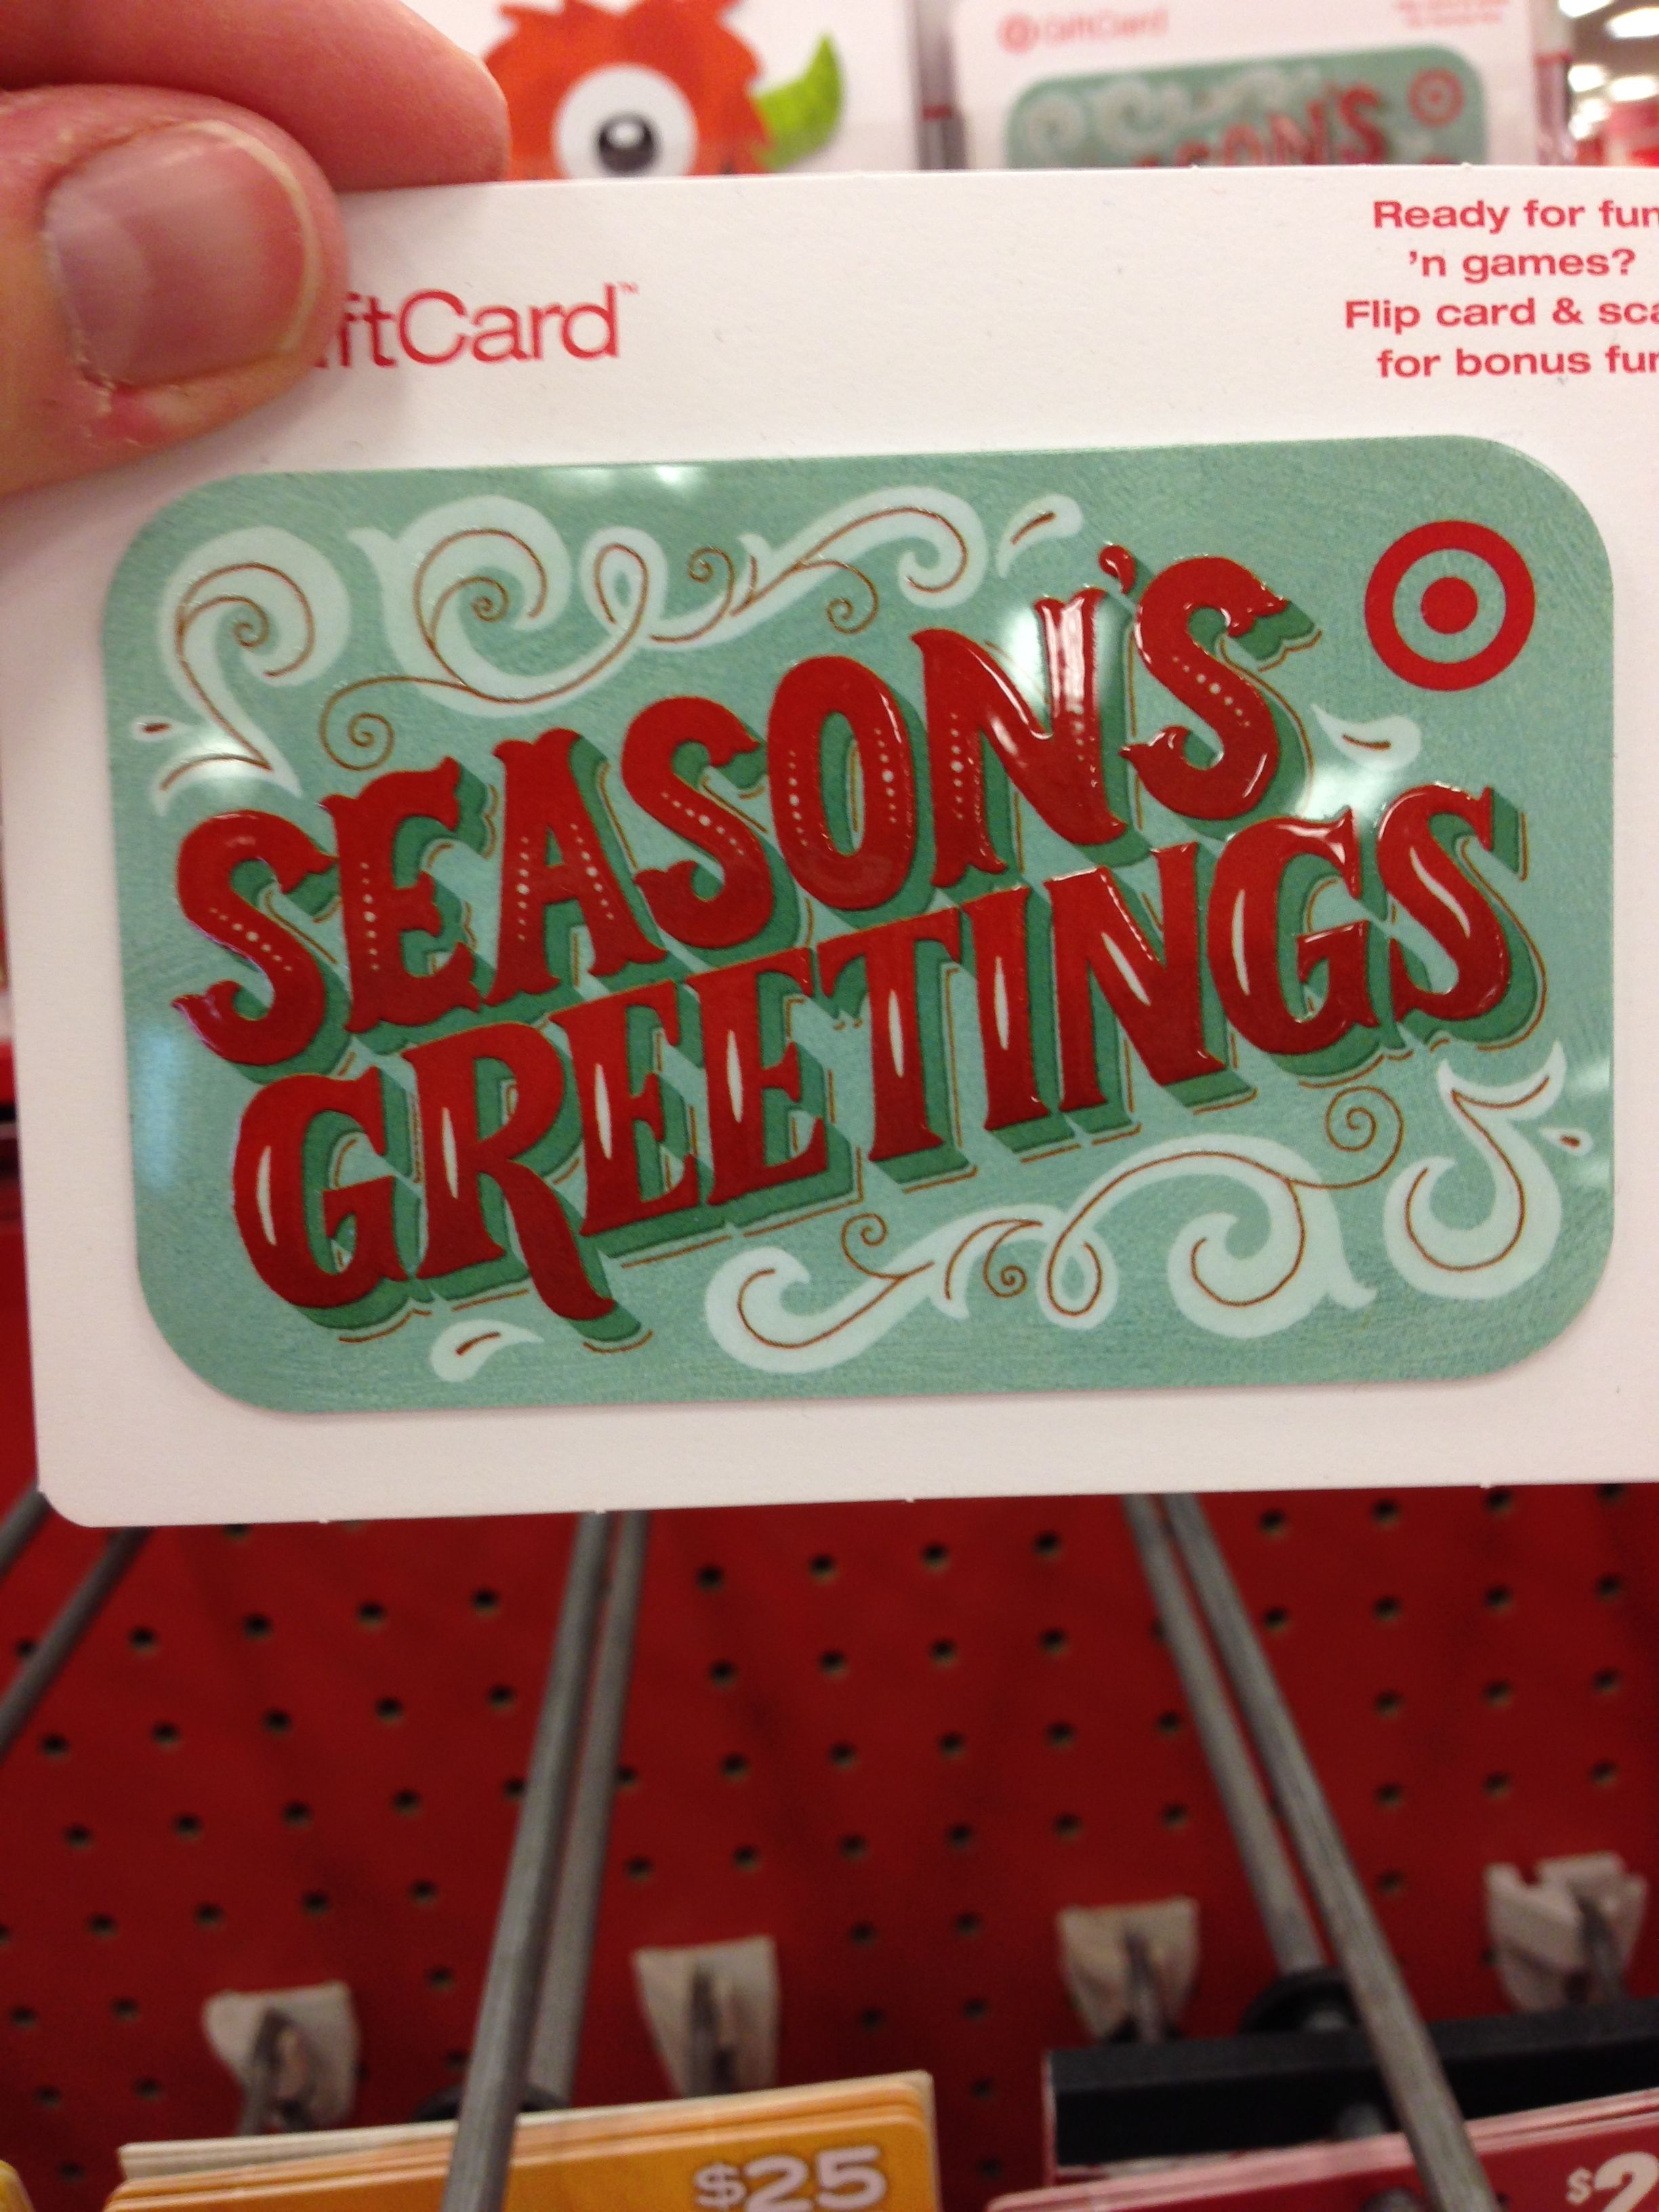 Winter Holiday Themed Gift Cards - Target Stores (2013)